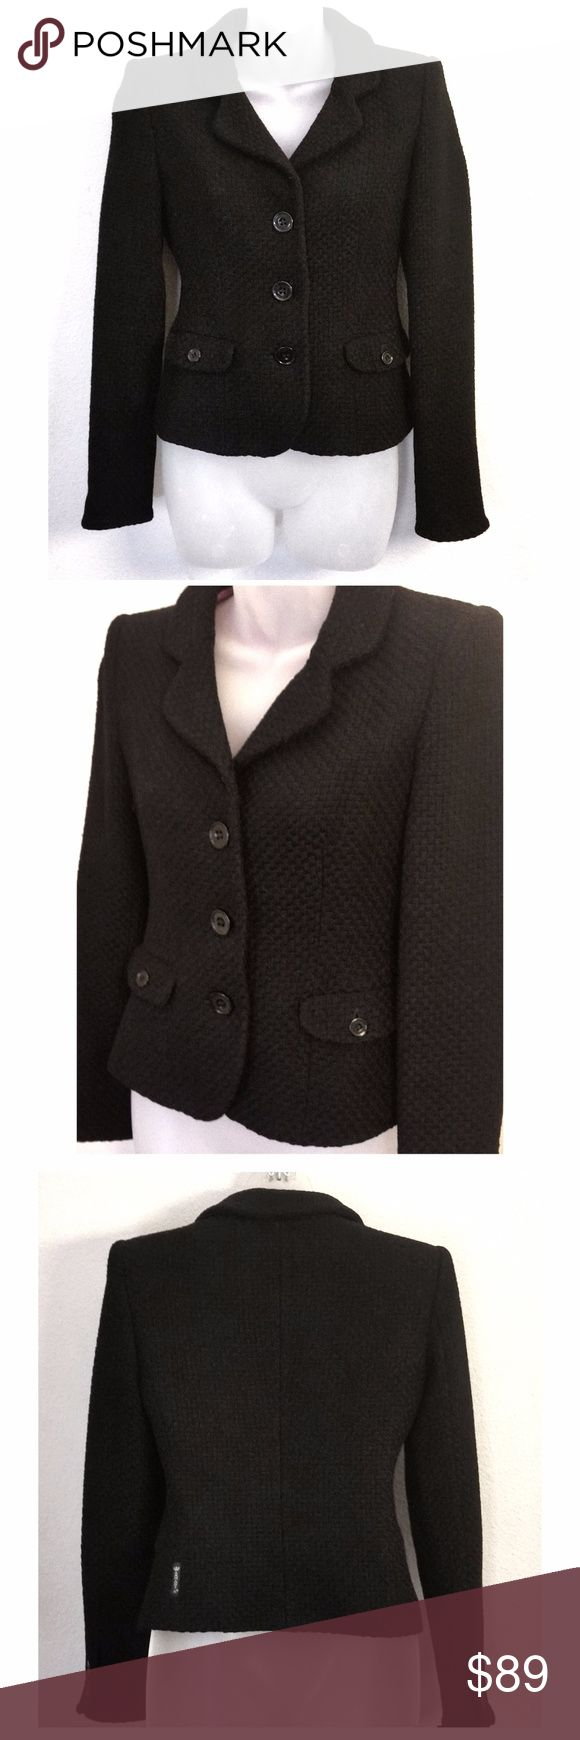 AJ Armani Black Tweed Jacket Women's Size 38 Excellent condition  Size 38  Black  Cleaning Out Closet Sale No Trading Thank you Armani Jeans Jackets & Coats Blazers